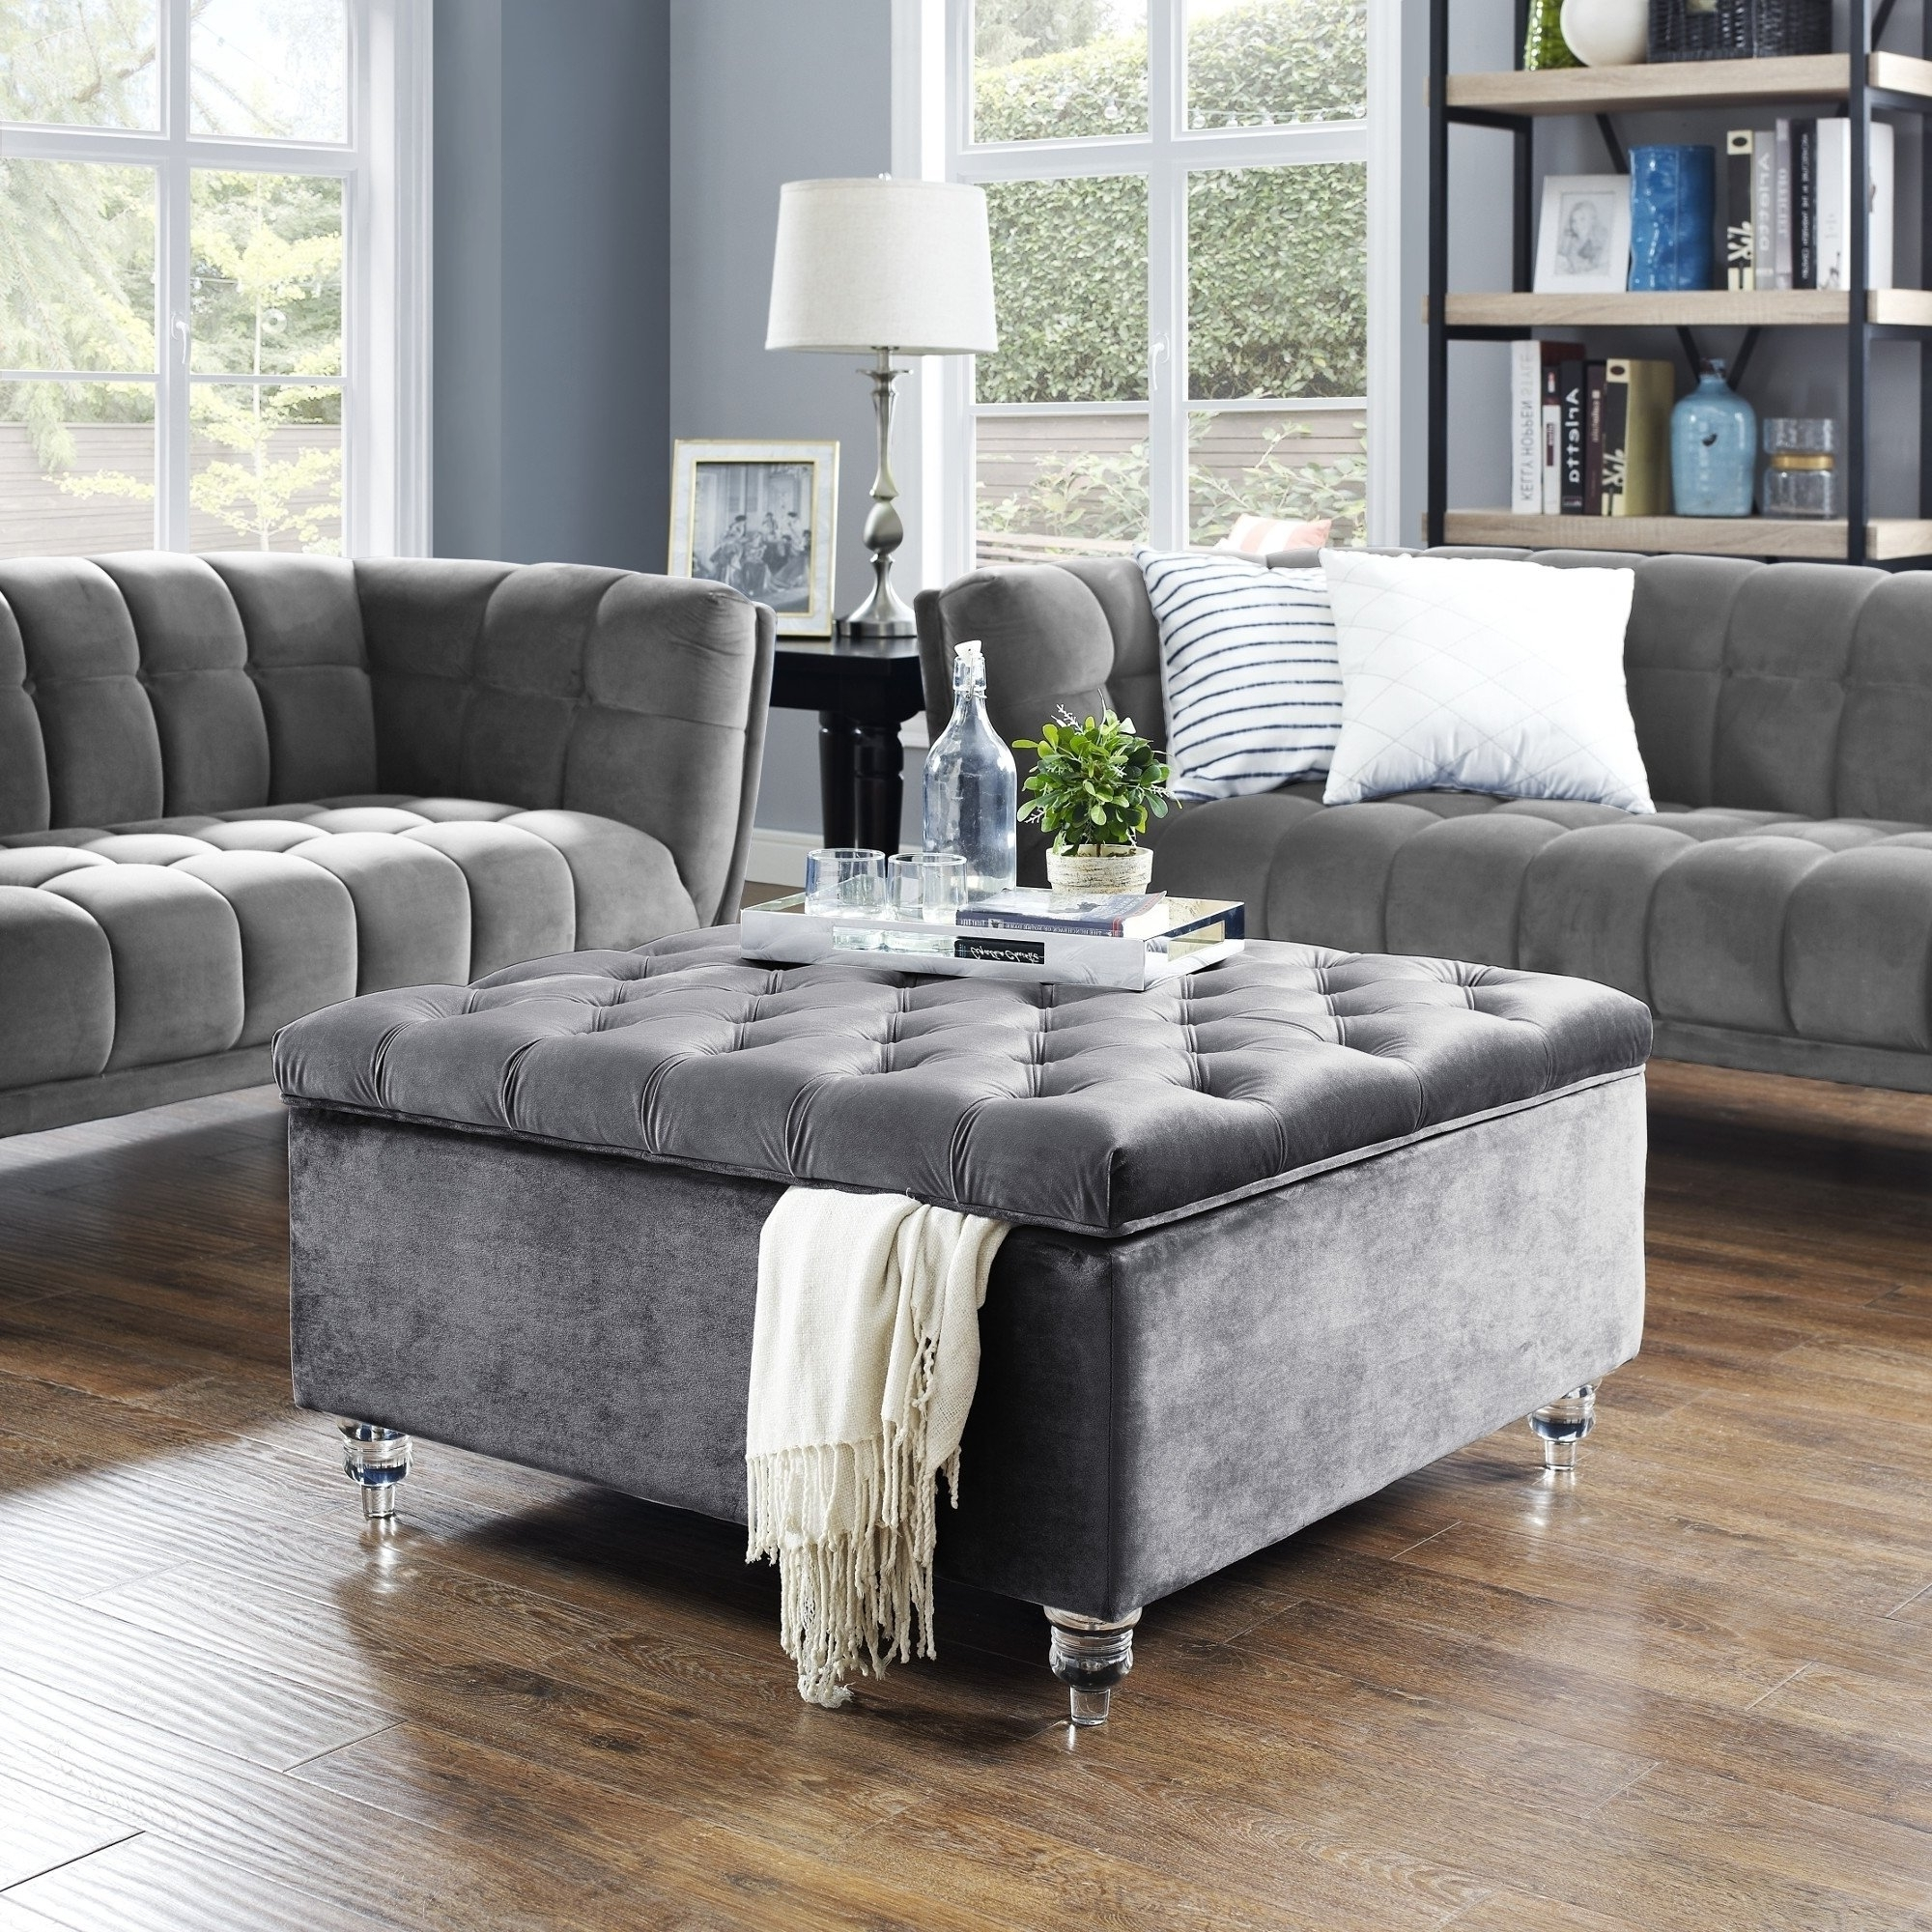 Fashionable Button Tufted Coffee Tables Within Shop Belini Modern Velvet Button Tufted Storage Ottoman/coffee Table (View 4 of 20)